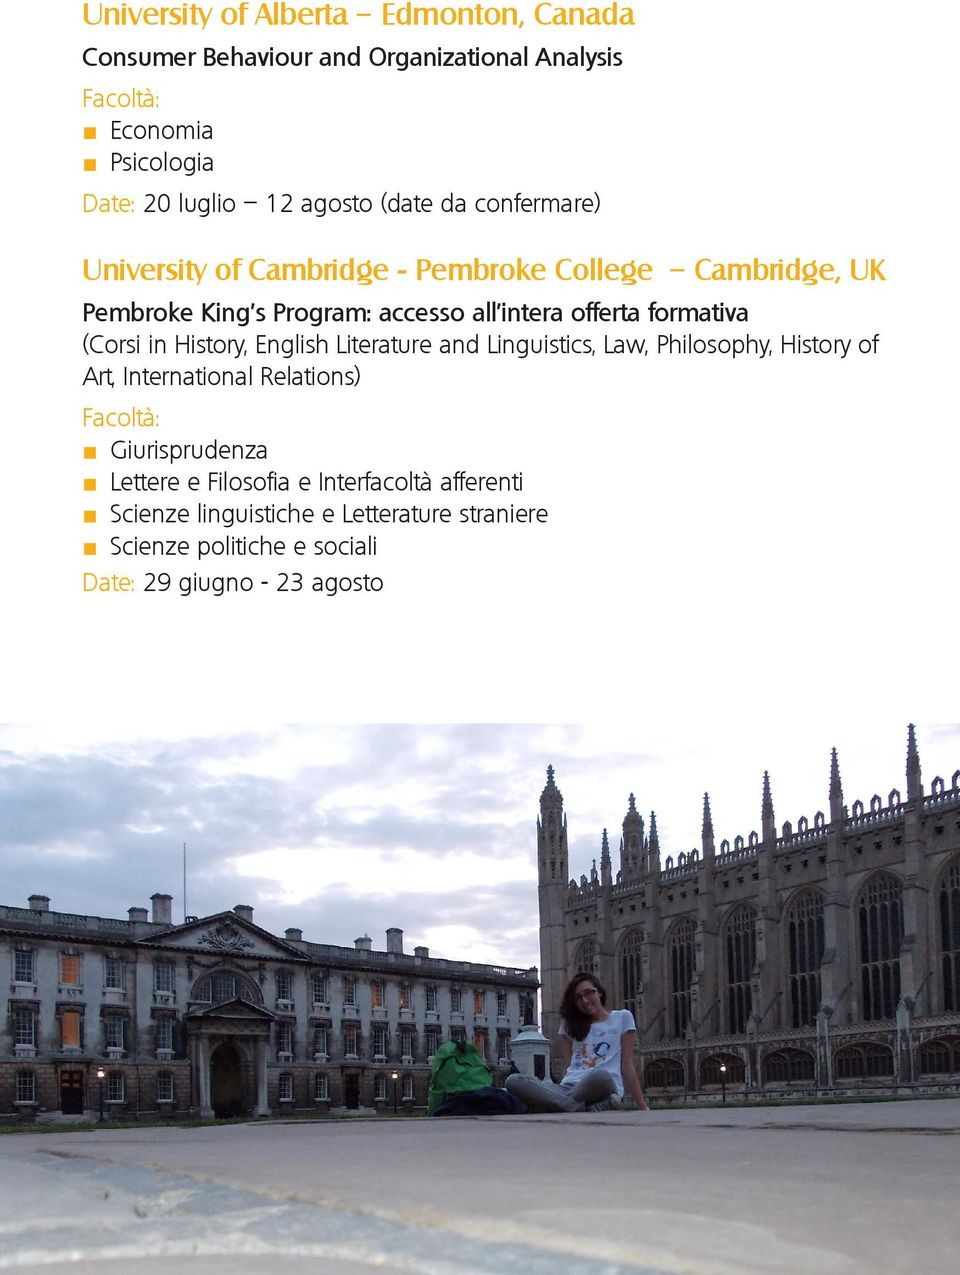 offerta formativa (Corsi in History, English Literature and Linguistics, Law, Philosophy, History of Art, International